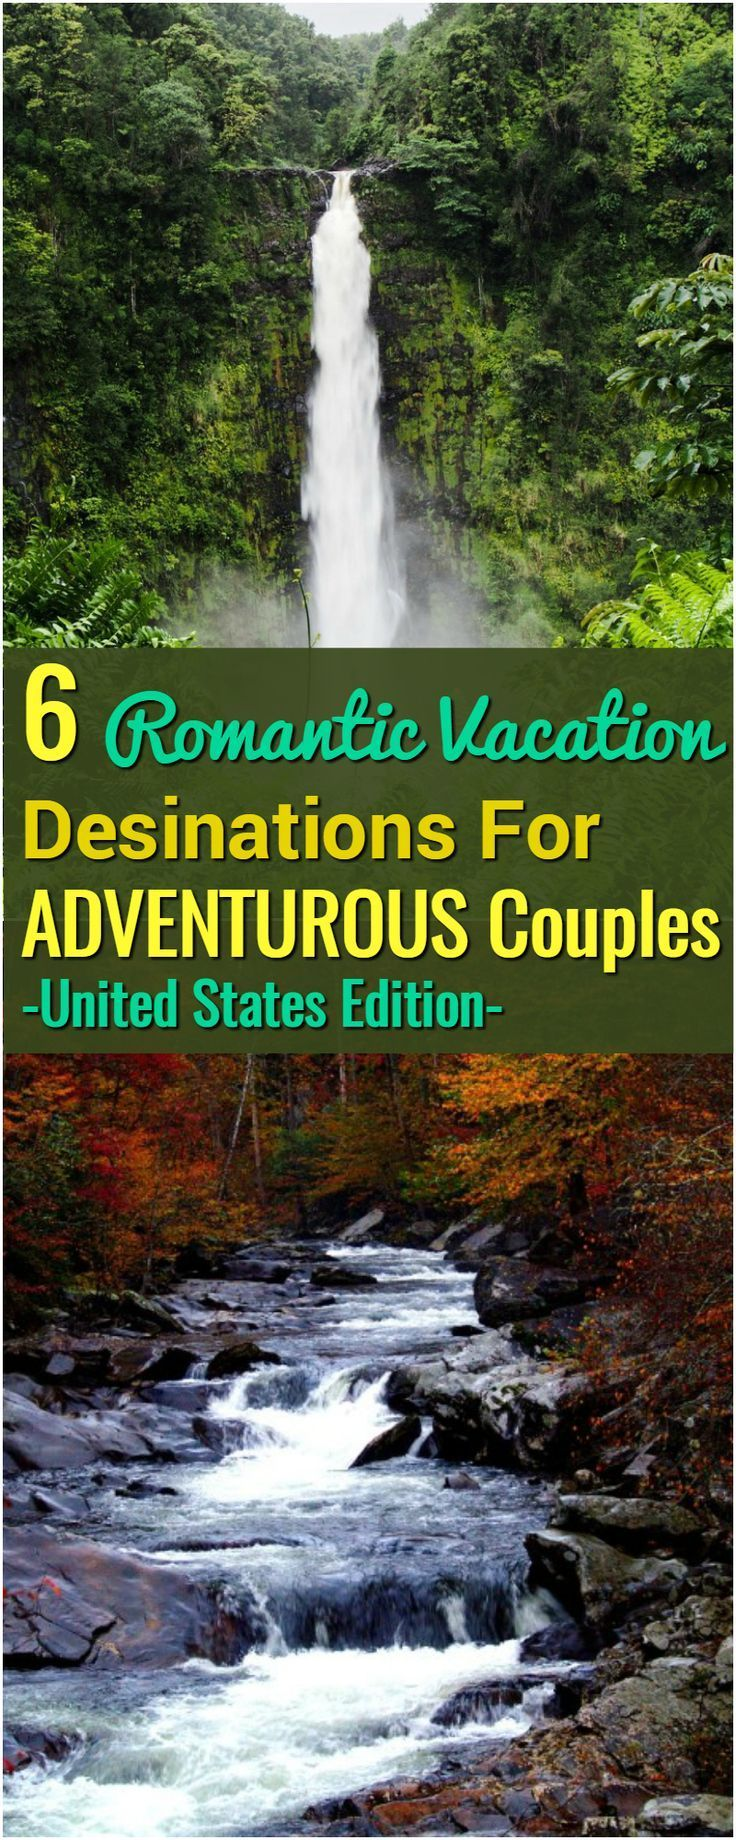 Vacation Destinations For Couples On Romantic Getaways